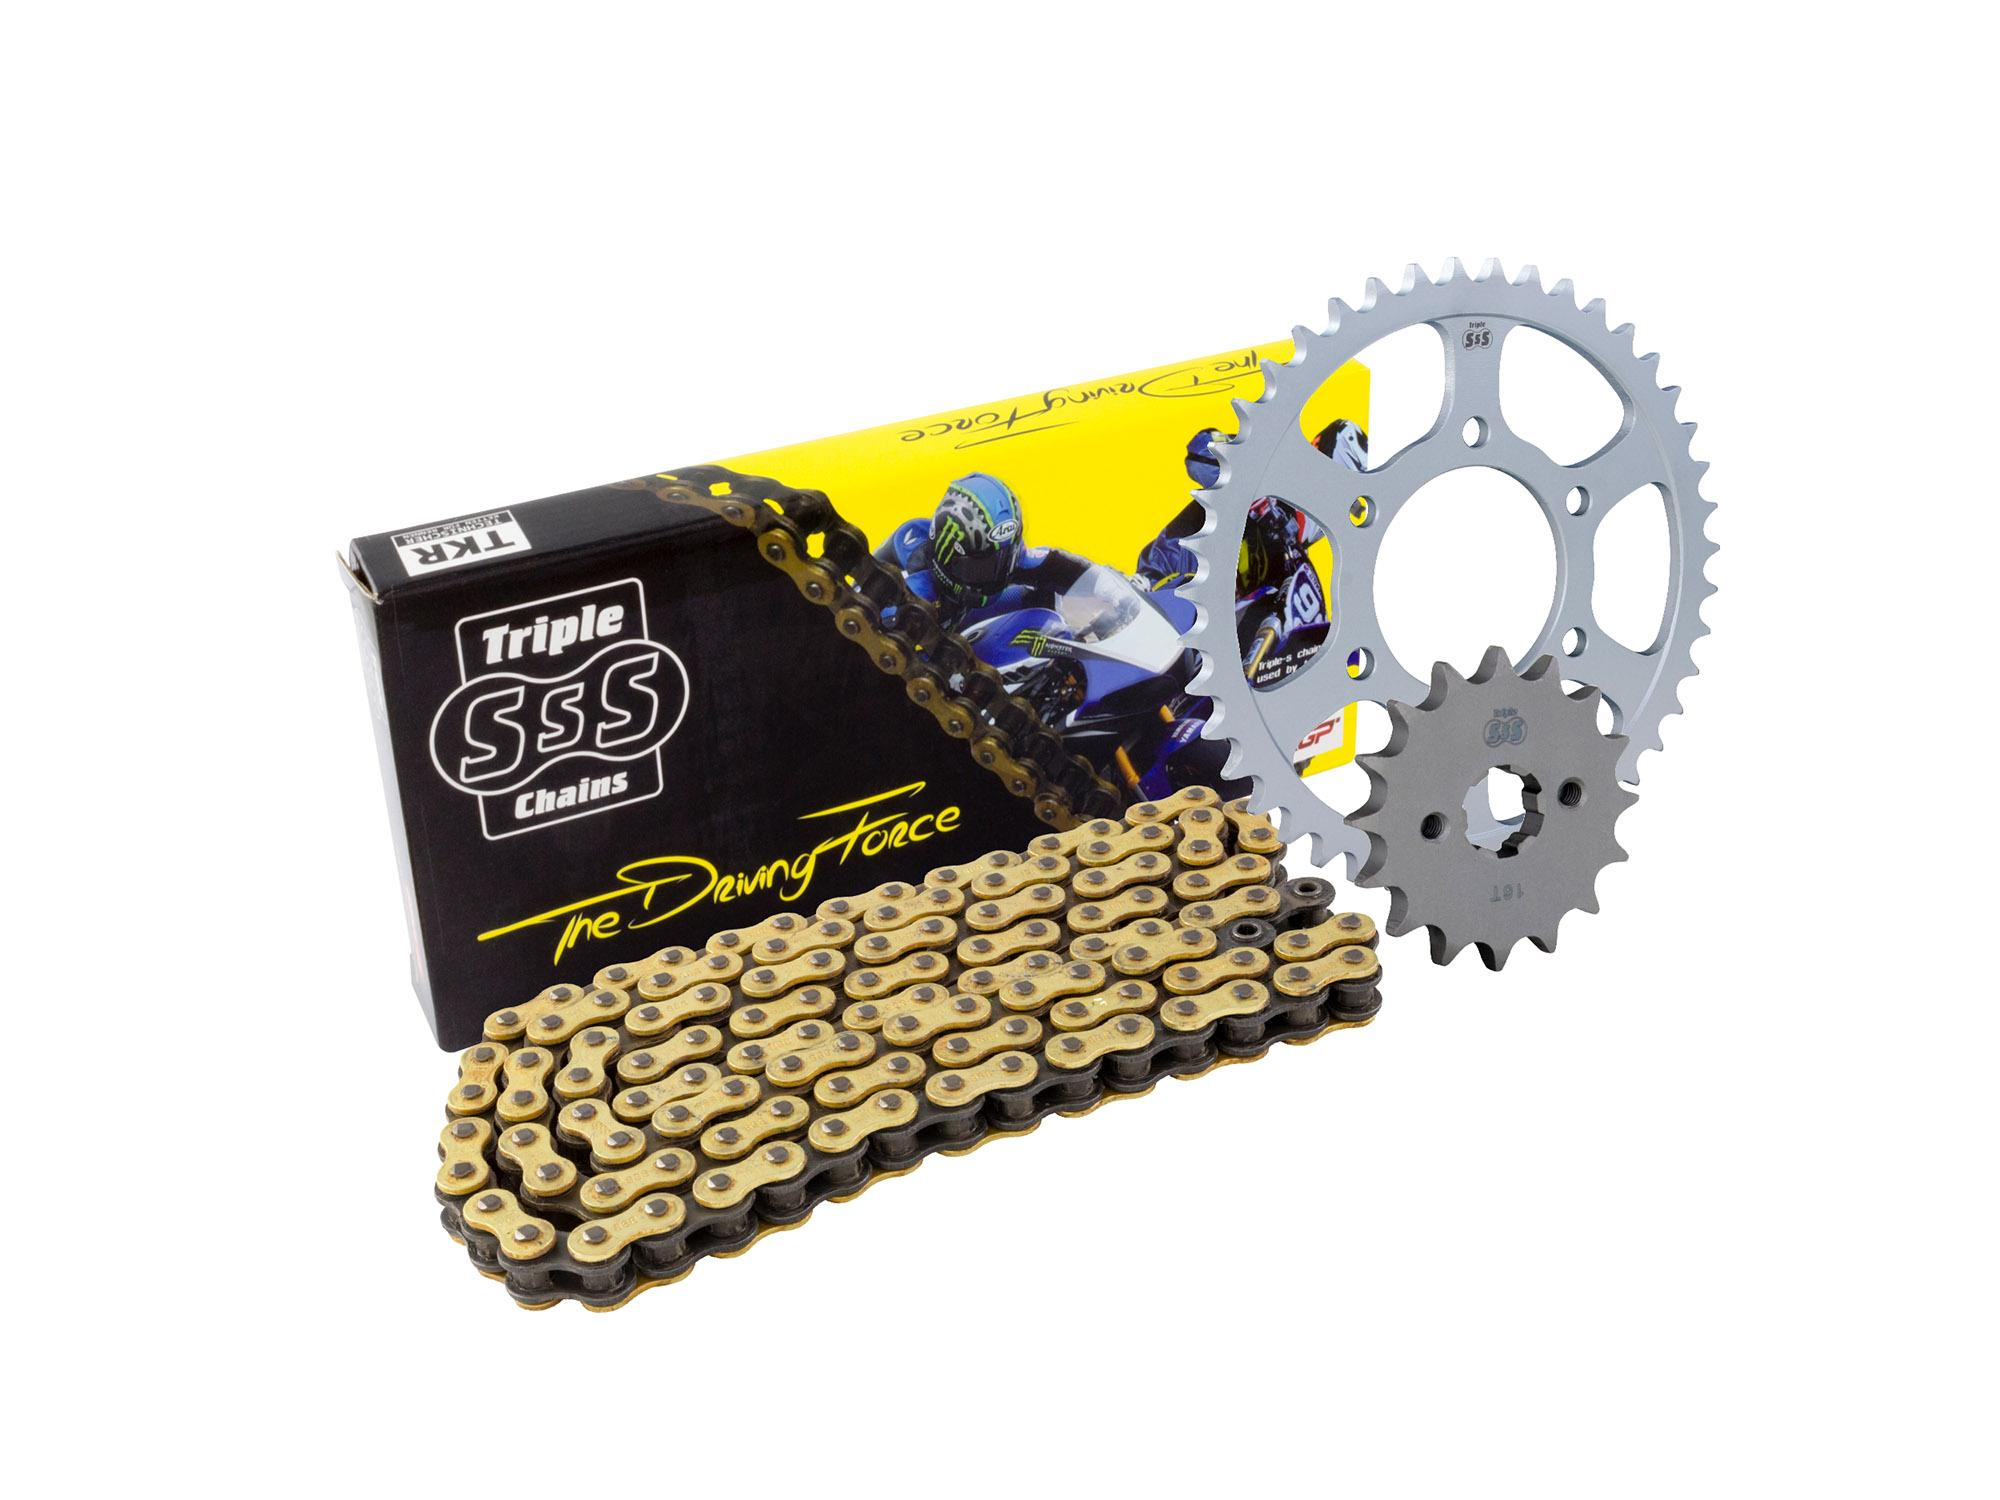 Aprilia 1000 RSV4 Factory 09-10 Chain & Sprocket Kit: 16T Front, 40T Rear, HD O-Ring Gold Chain 525H 108Link